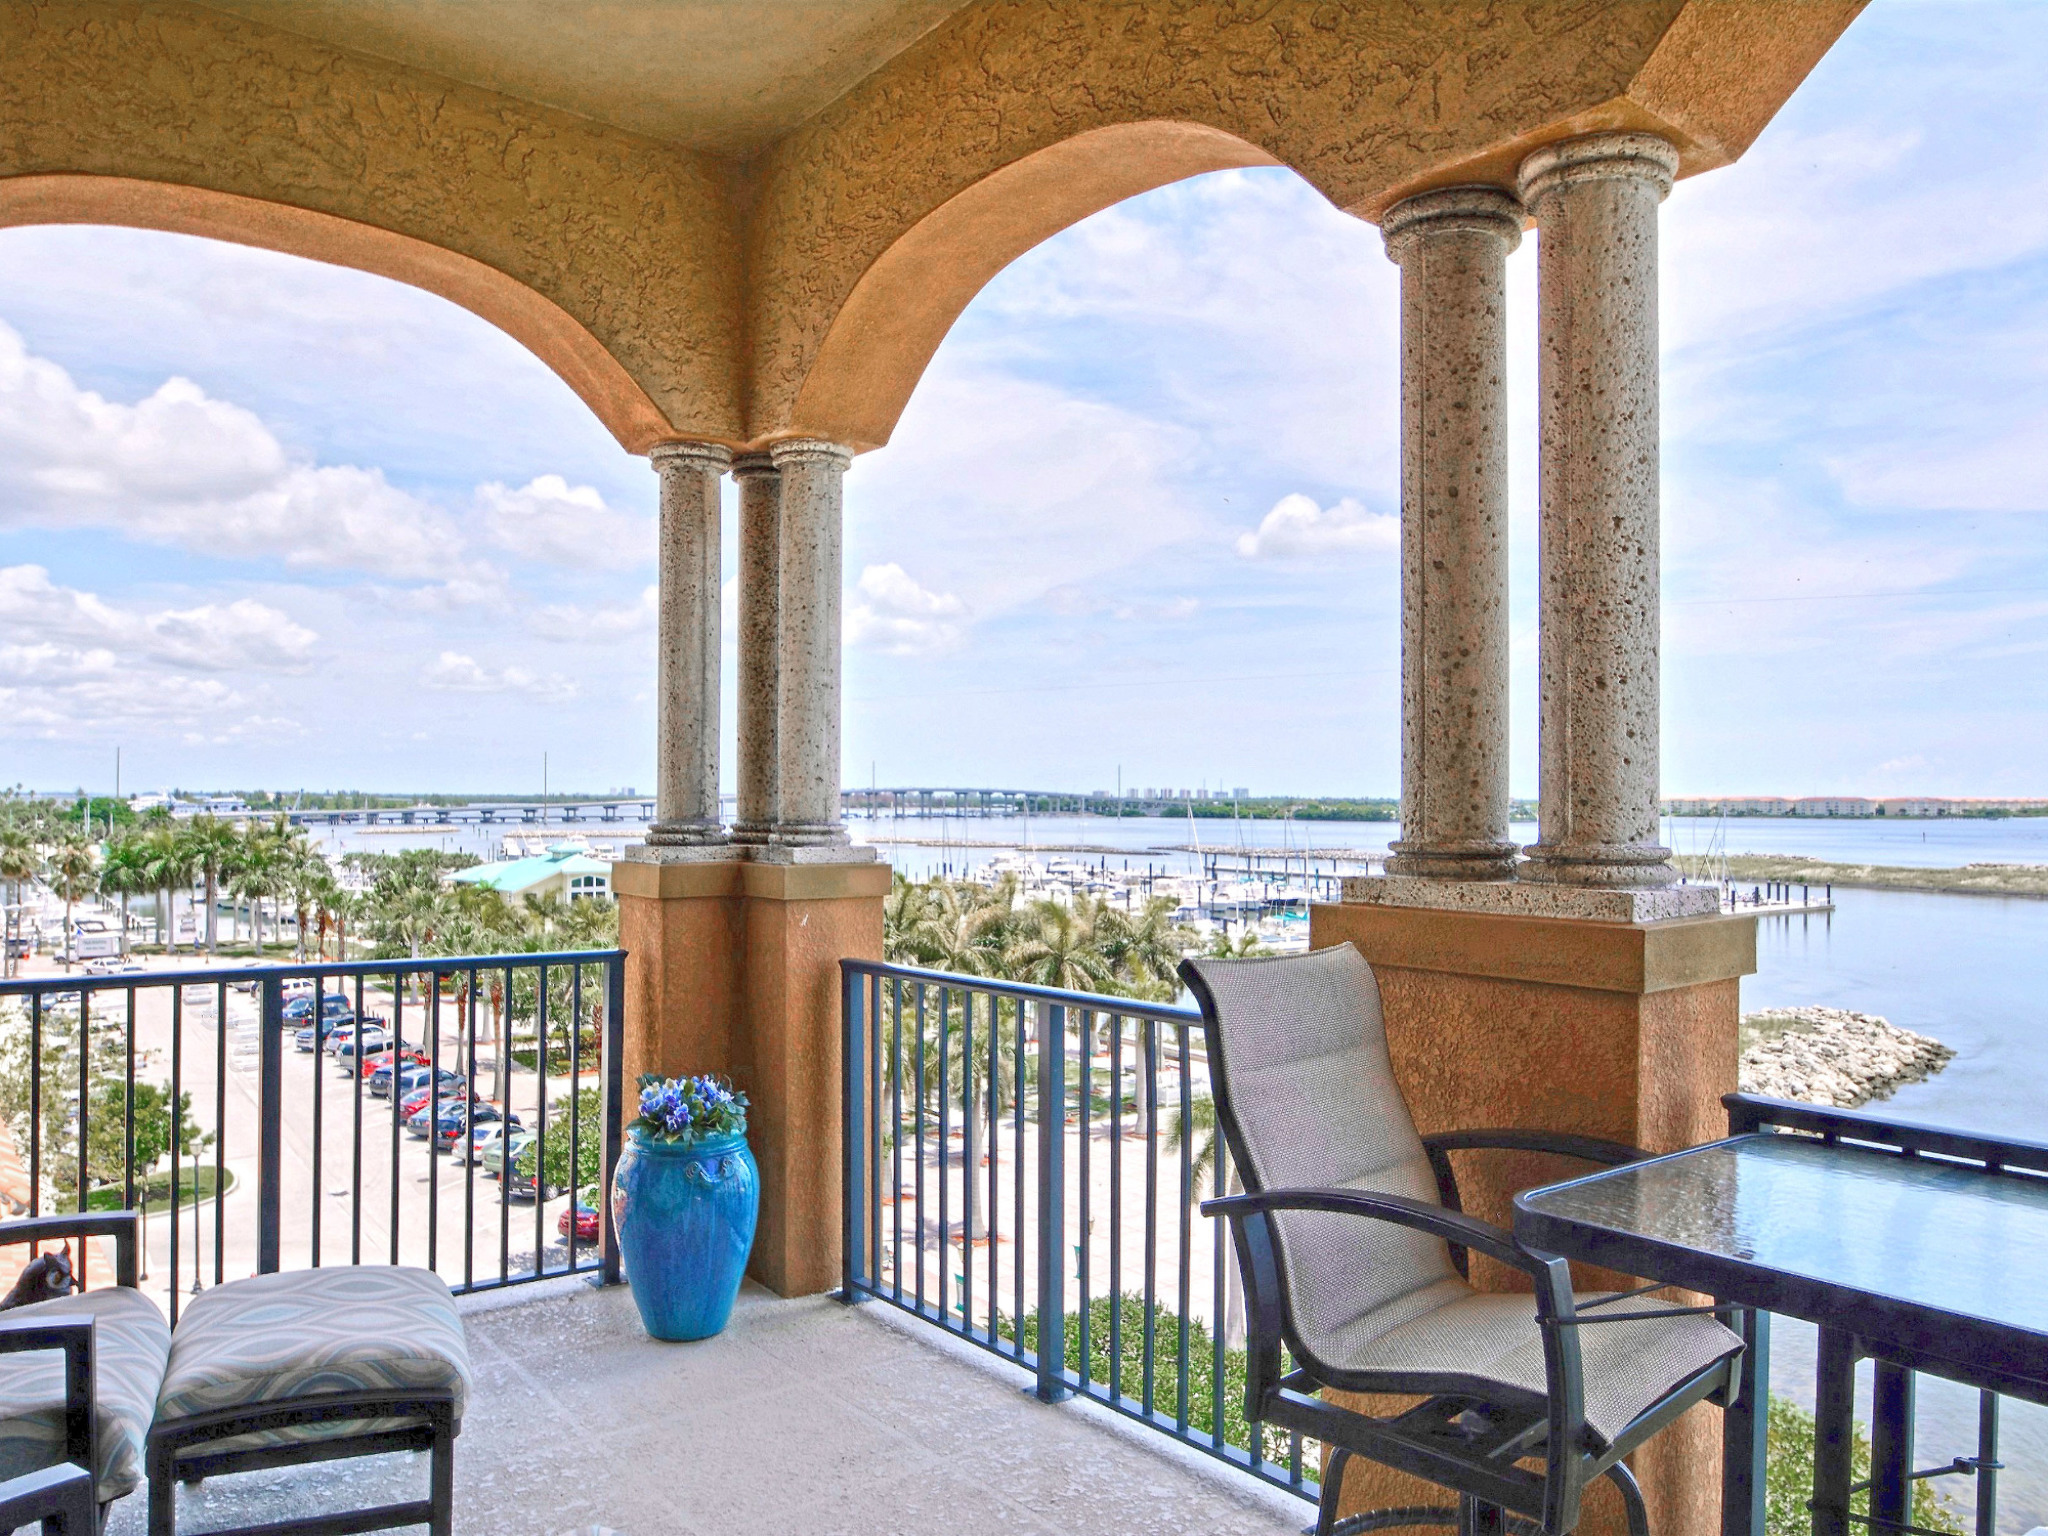 Condominio por un Venta en Renaissance on the River Masterpiece 20 Orange Avenue PH-5 Fort Pierce, Florida, 34950 Estados Unidos